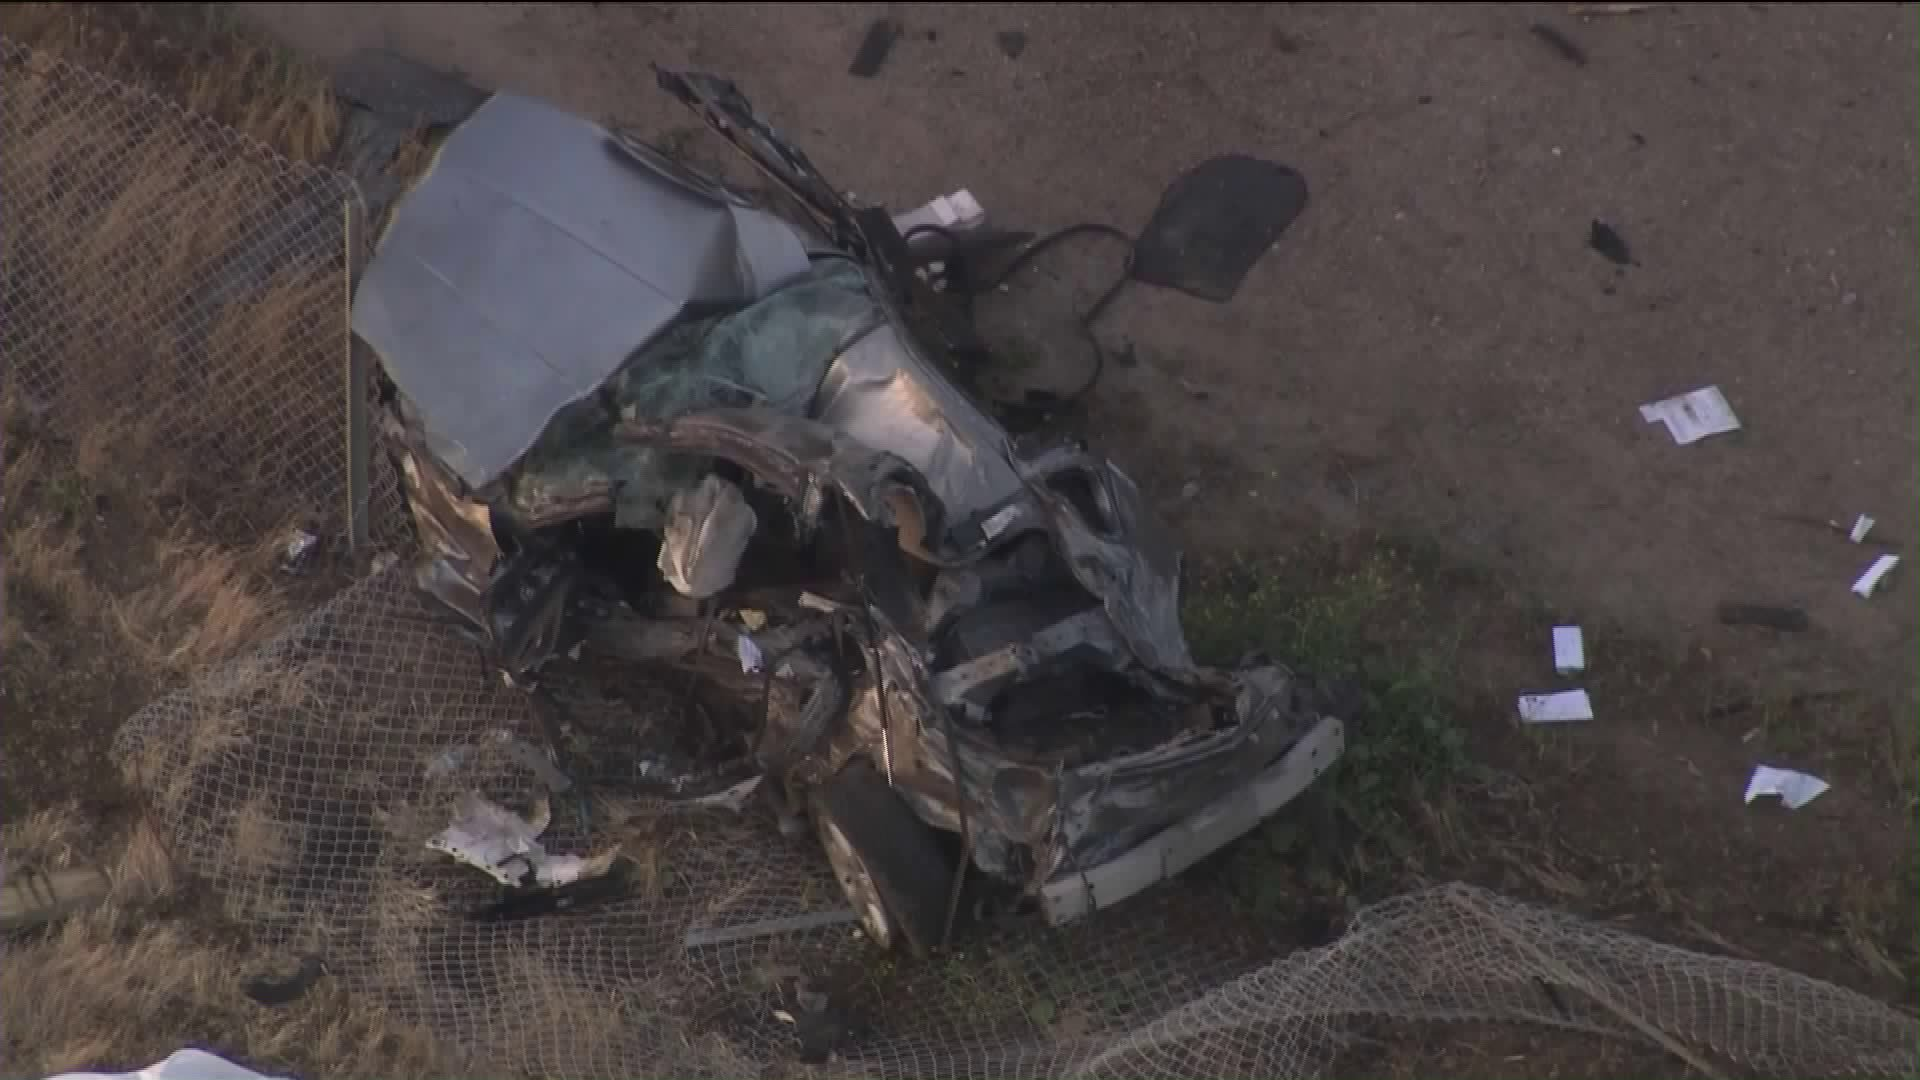 Authorities investigate a crash that left two people dead along Pacific Coast Highway near Point Mugu in Ventura County on May 17, 2019 (Credit: KTLA)